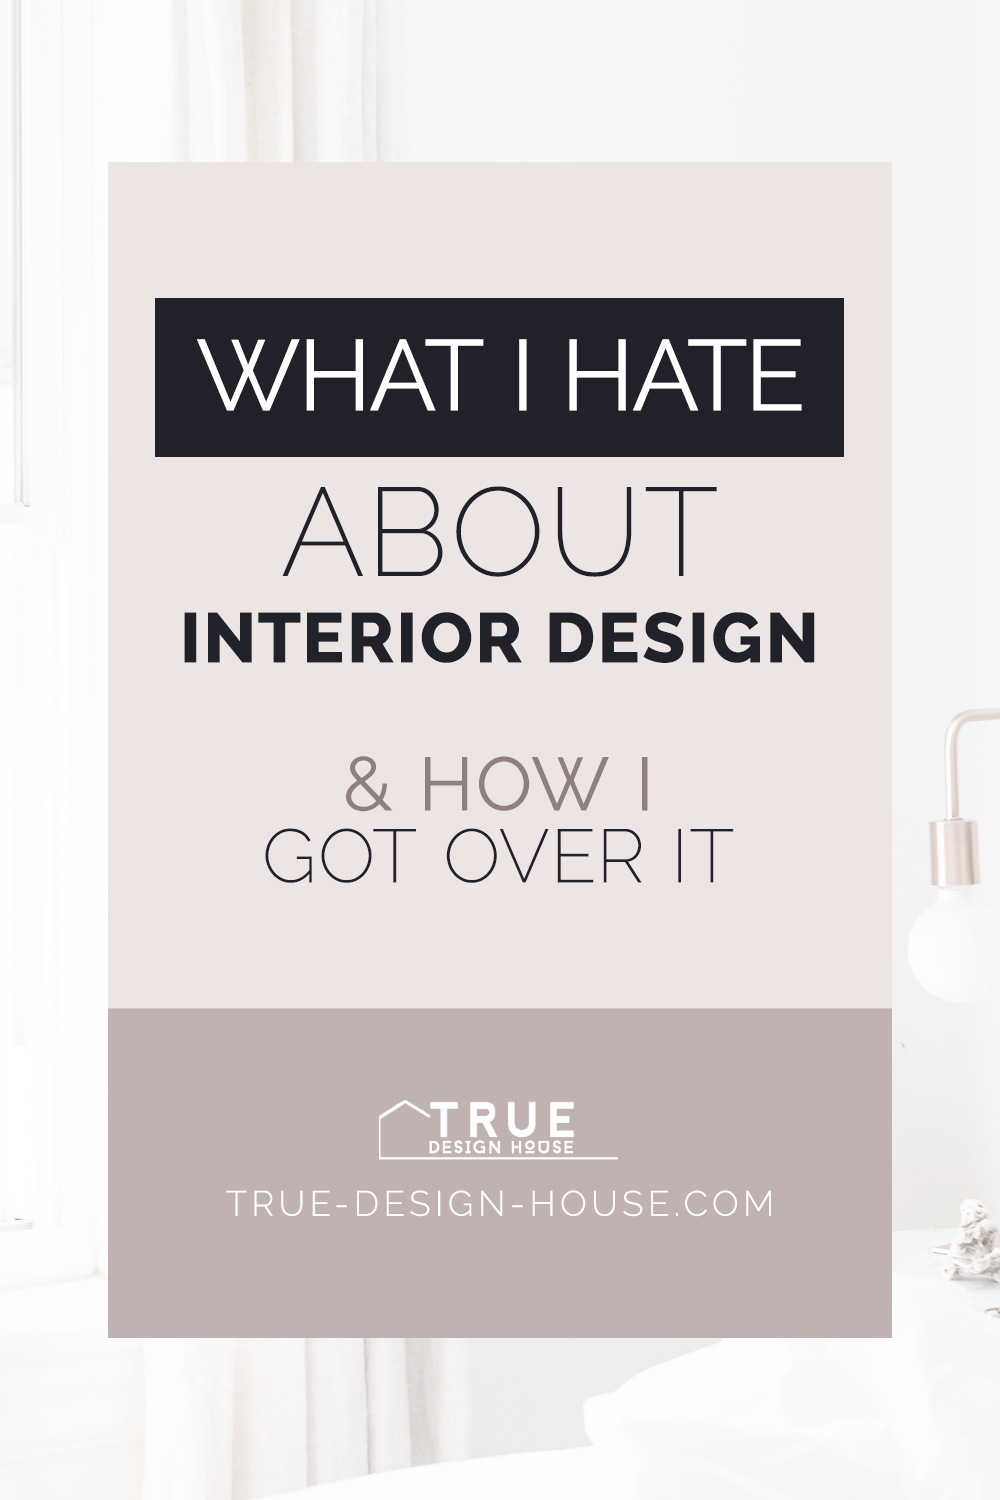 true design house - what i hate about interior design - 41 - pinterest - 4.png